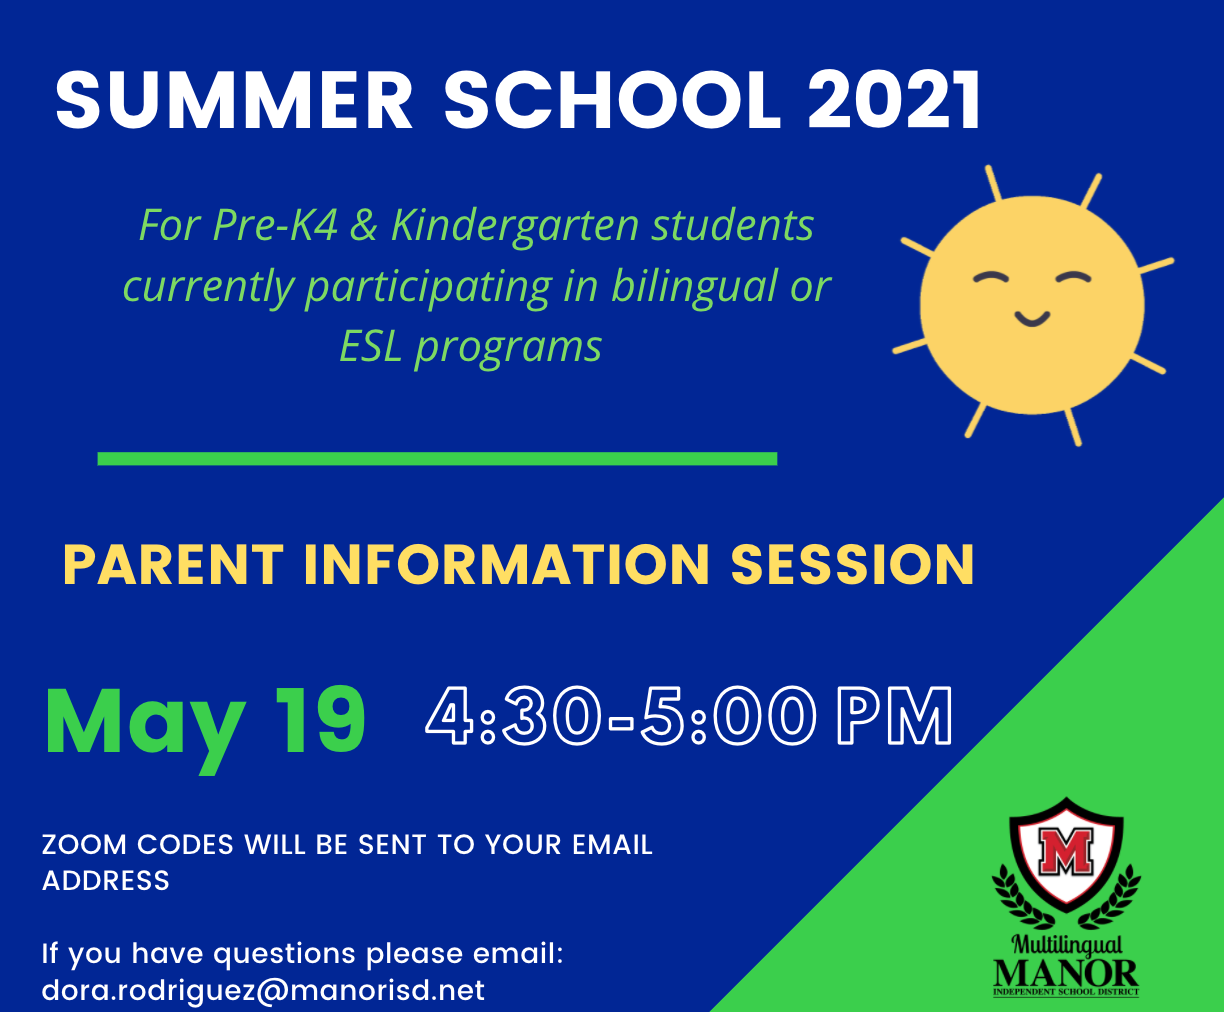 Summer School 2021 Parent Information Session May 19